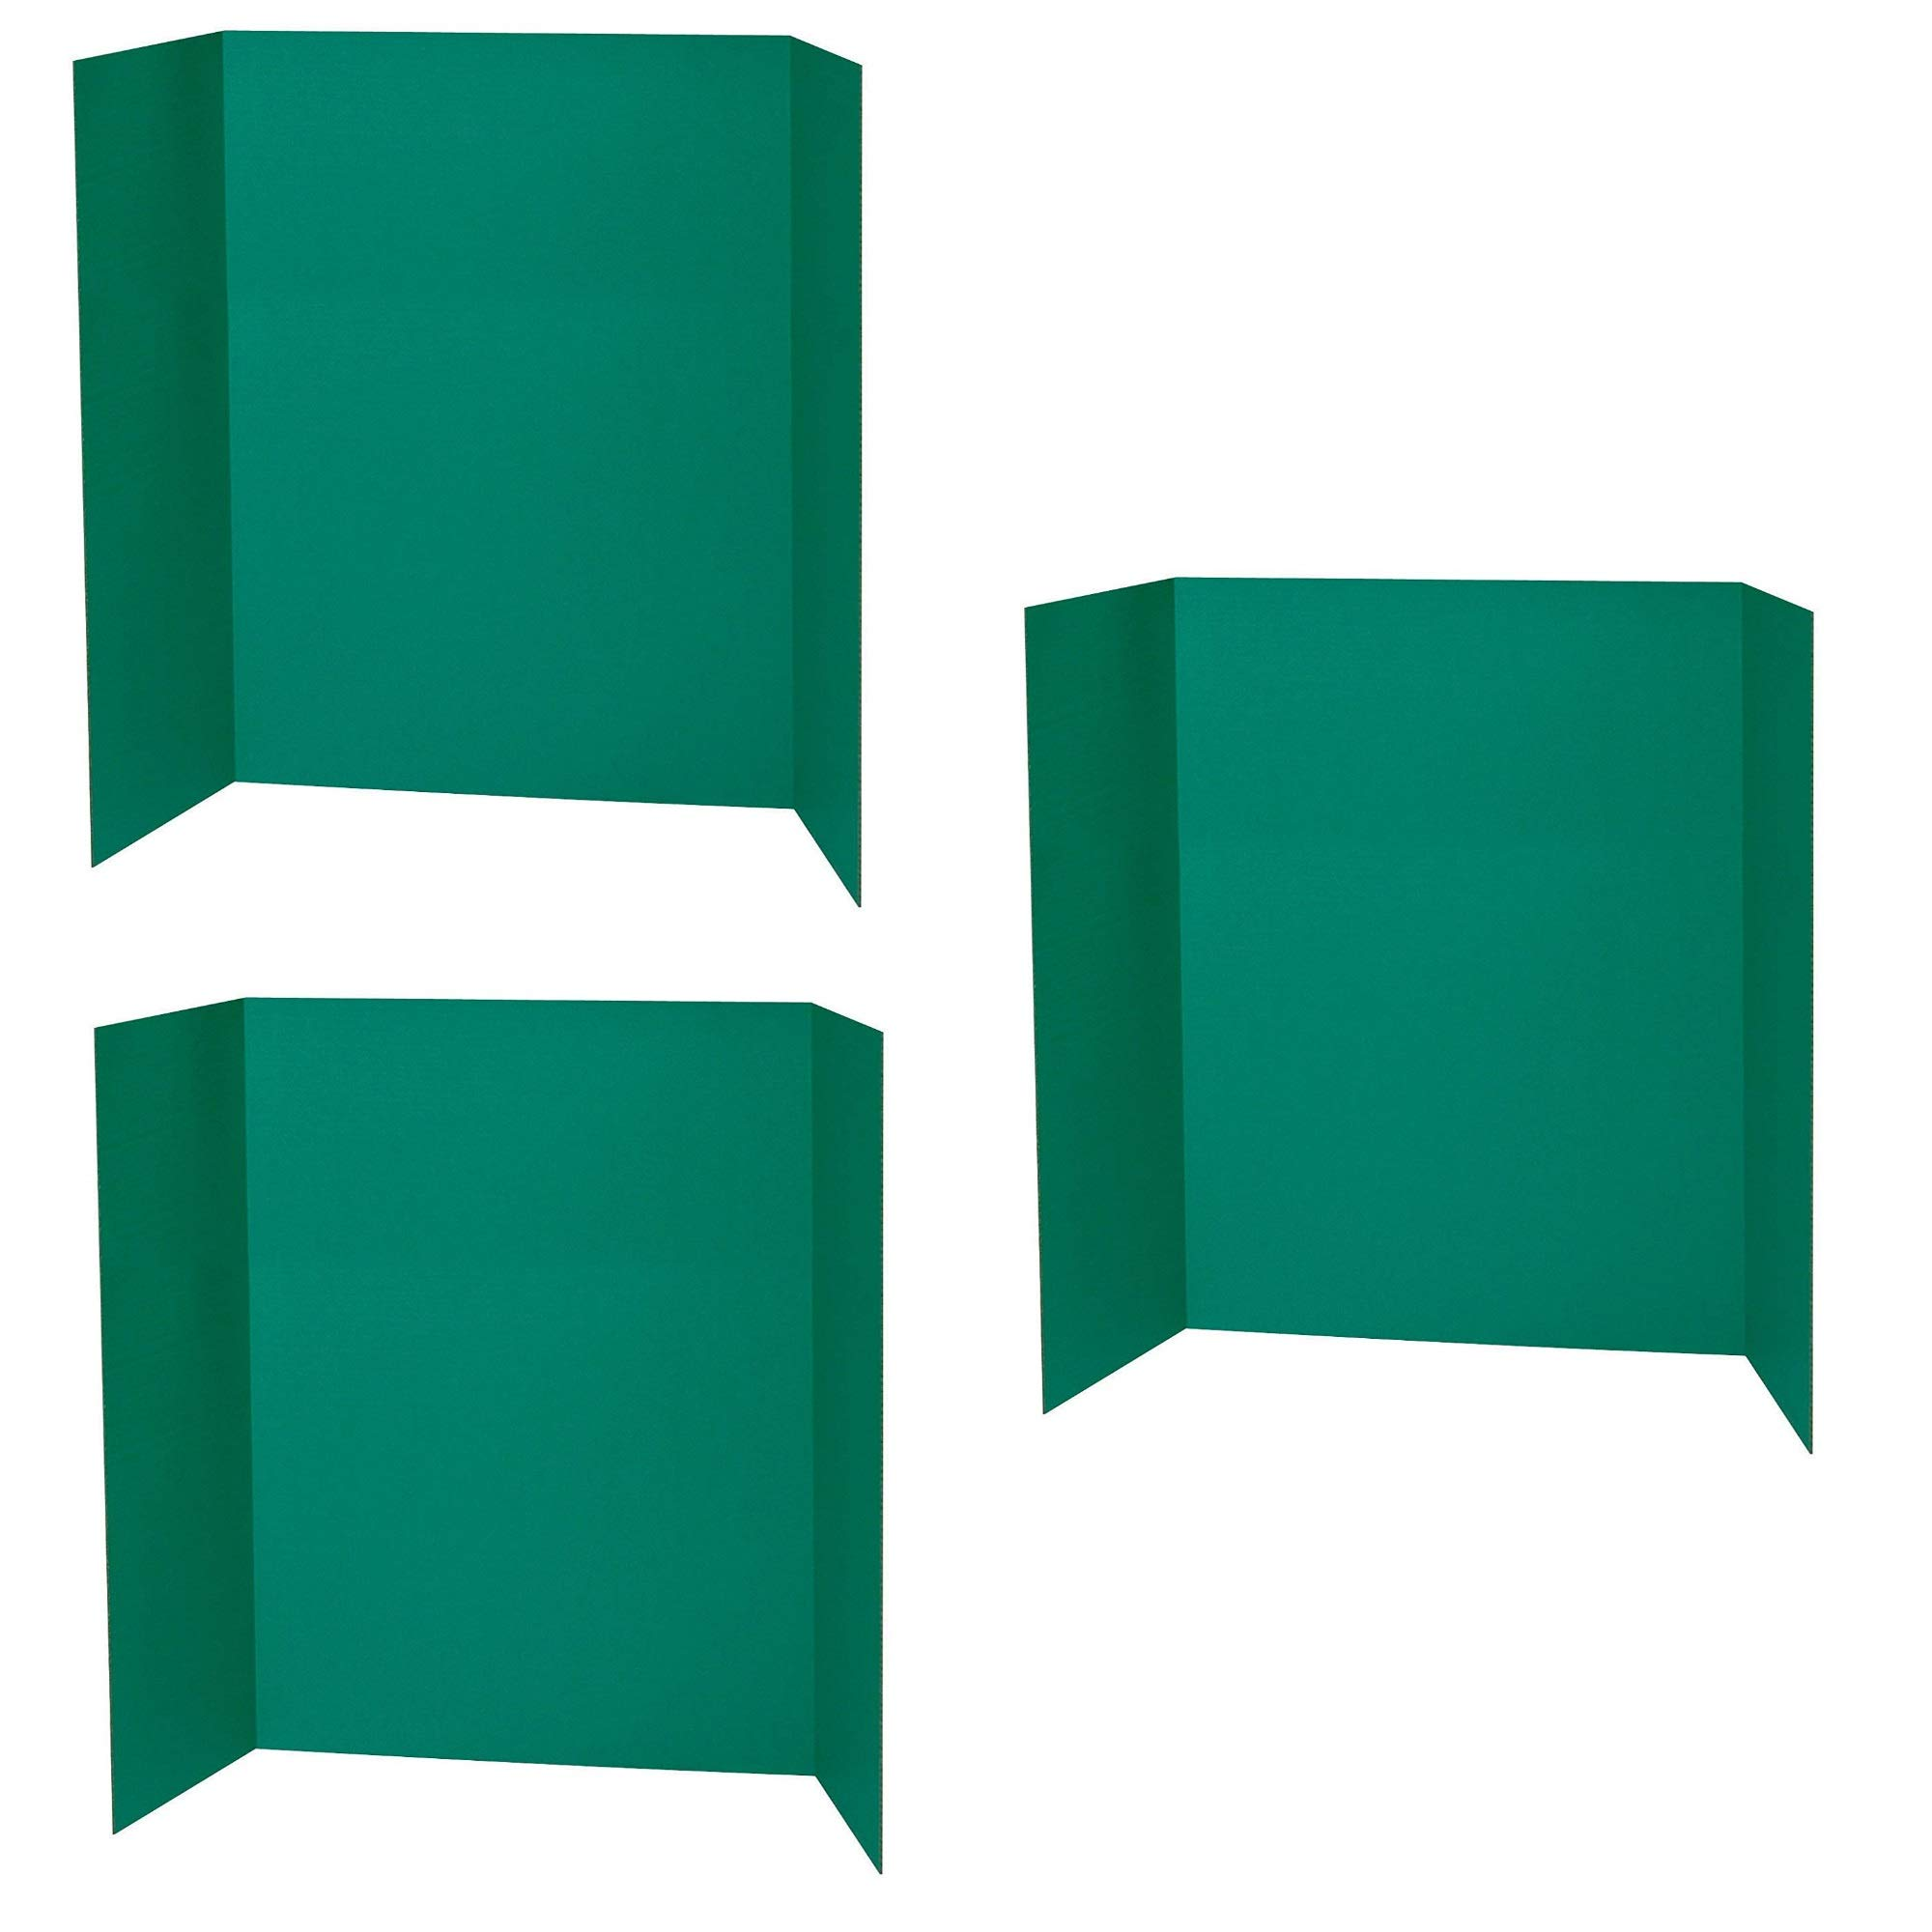 Spotlight 1 Ply Trifold Display Board, 48'' Width x 36'' Height, Green, 3 Pack